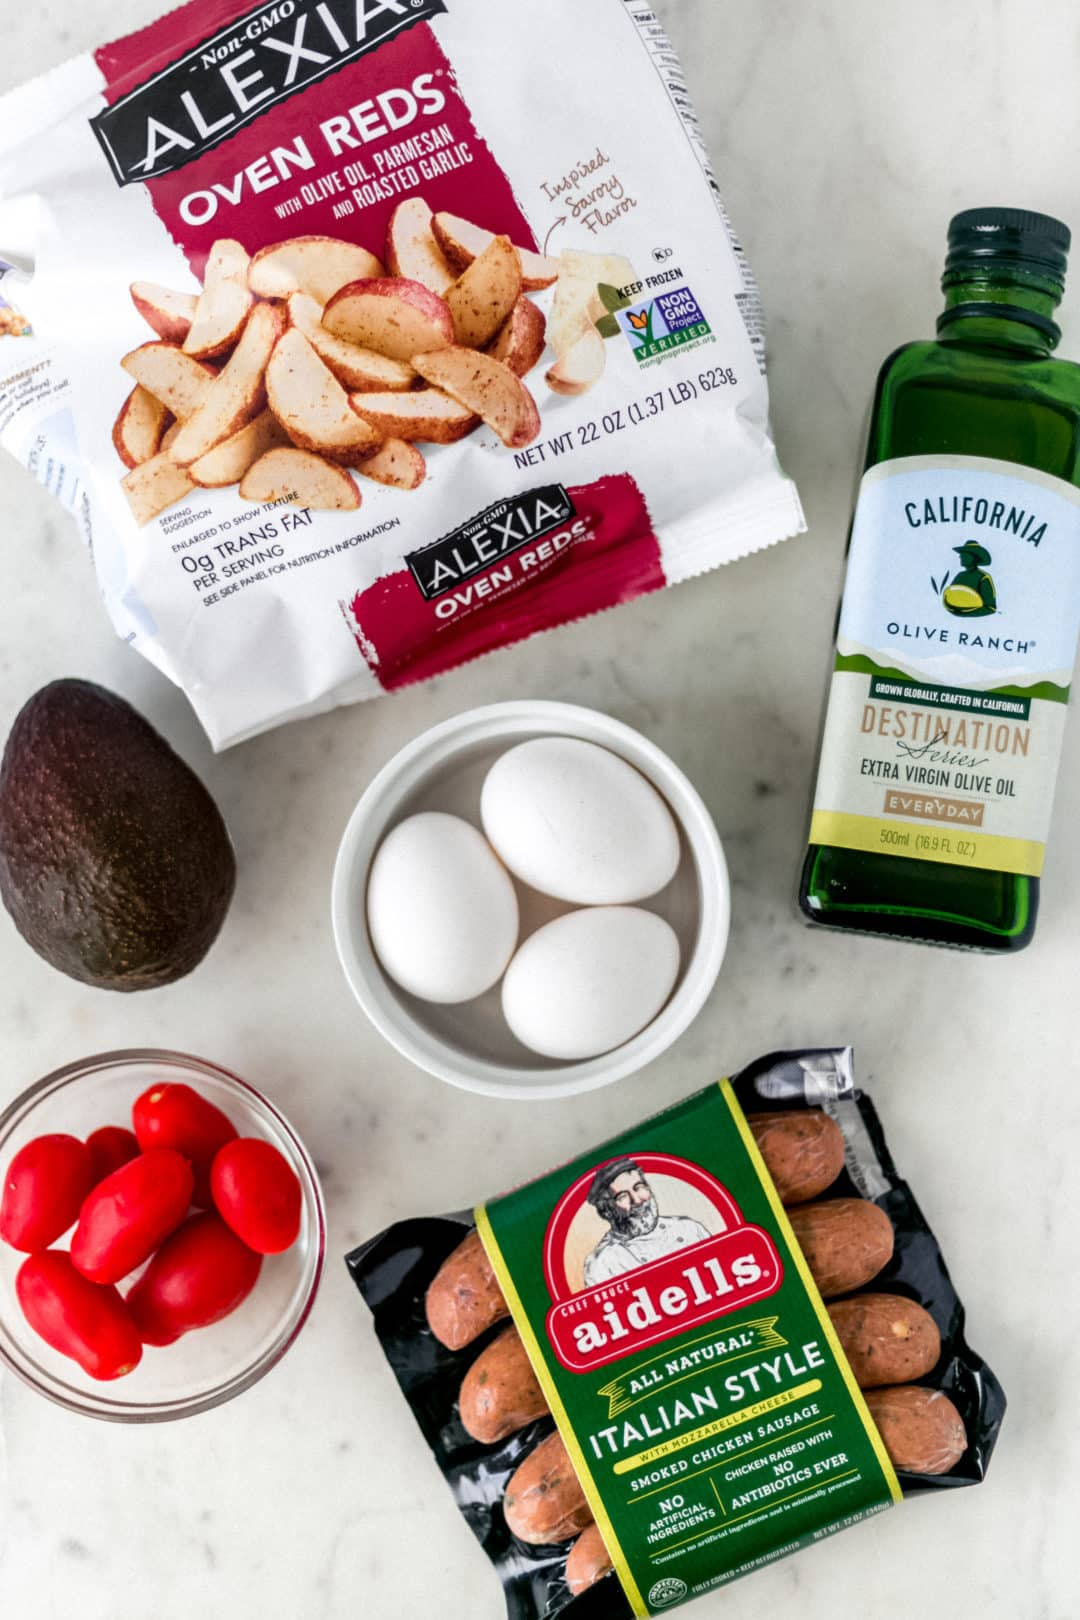 Ingredients for sheet pan breakfast bake